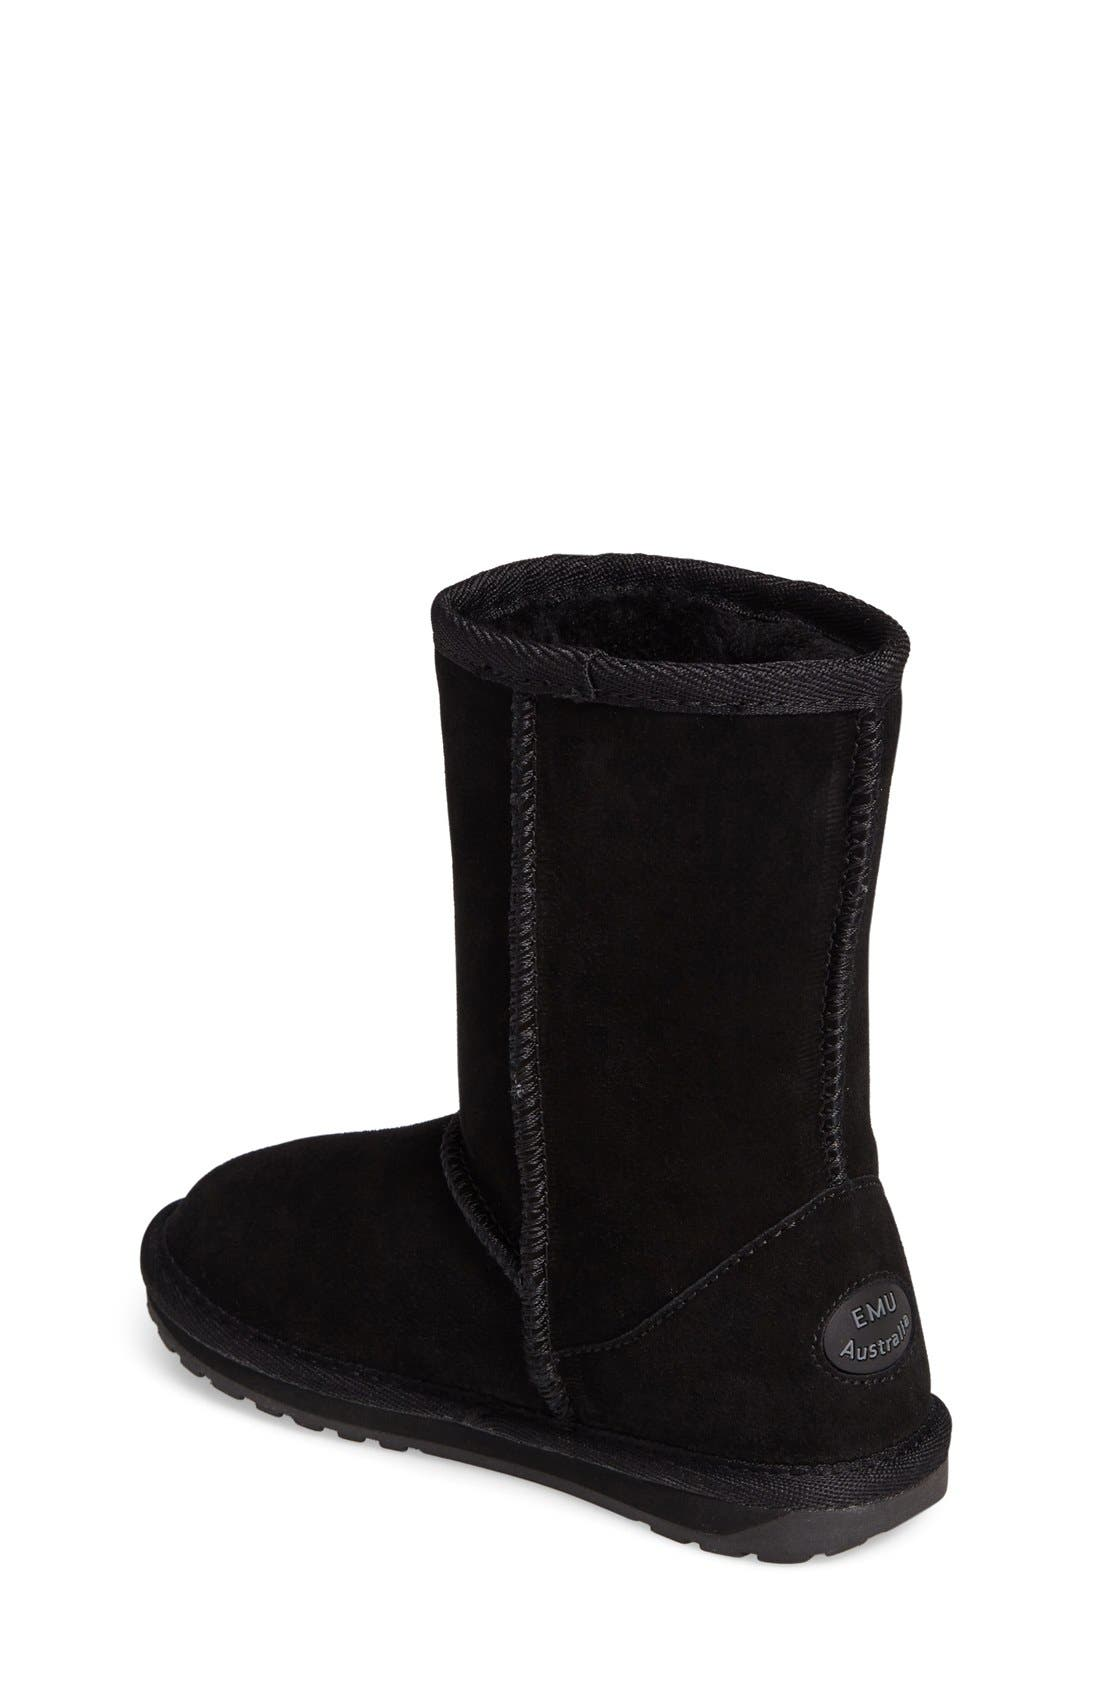 Wallaby Lo Boot,                             Alternate thumbnail 8, color,                             BLACK